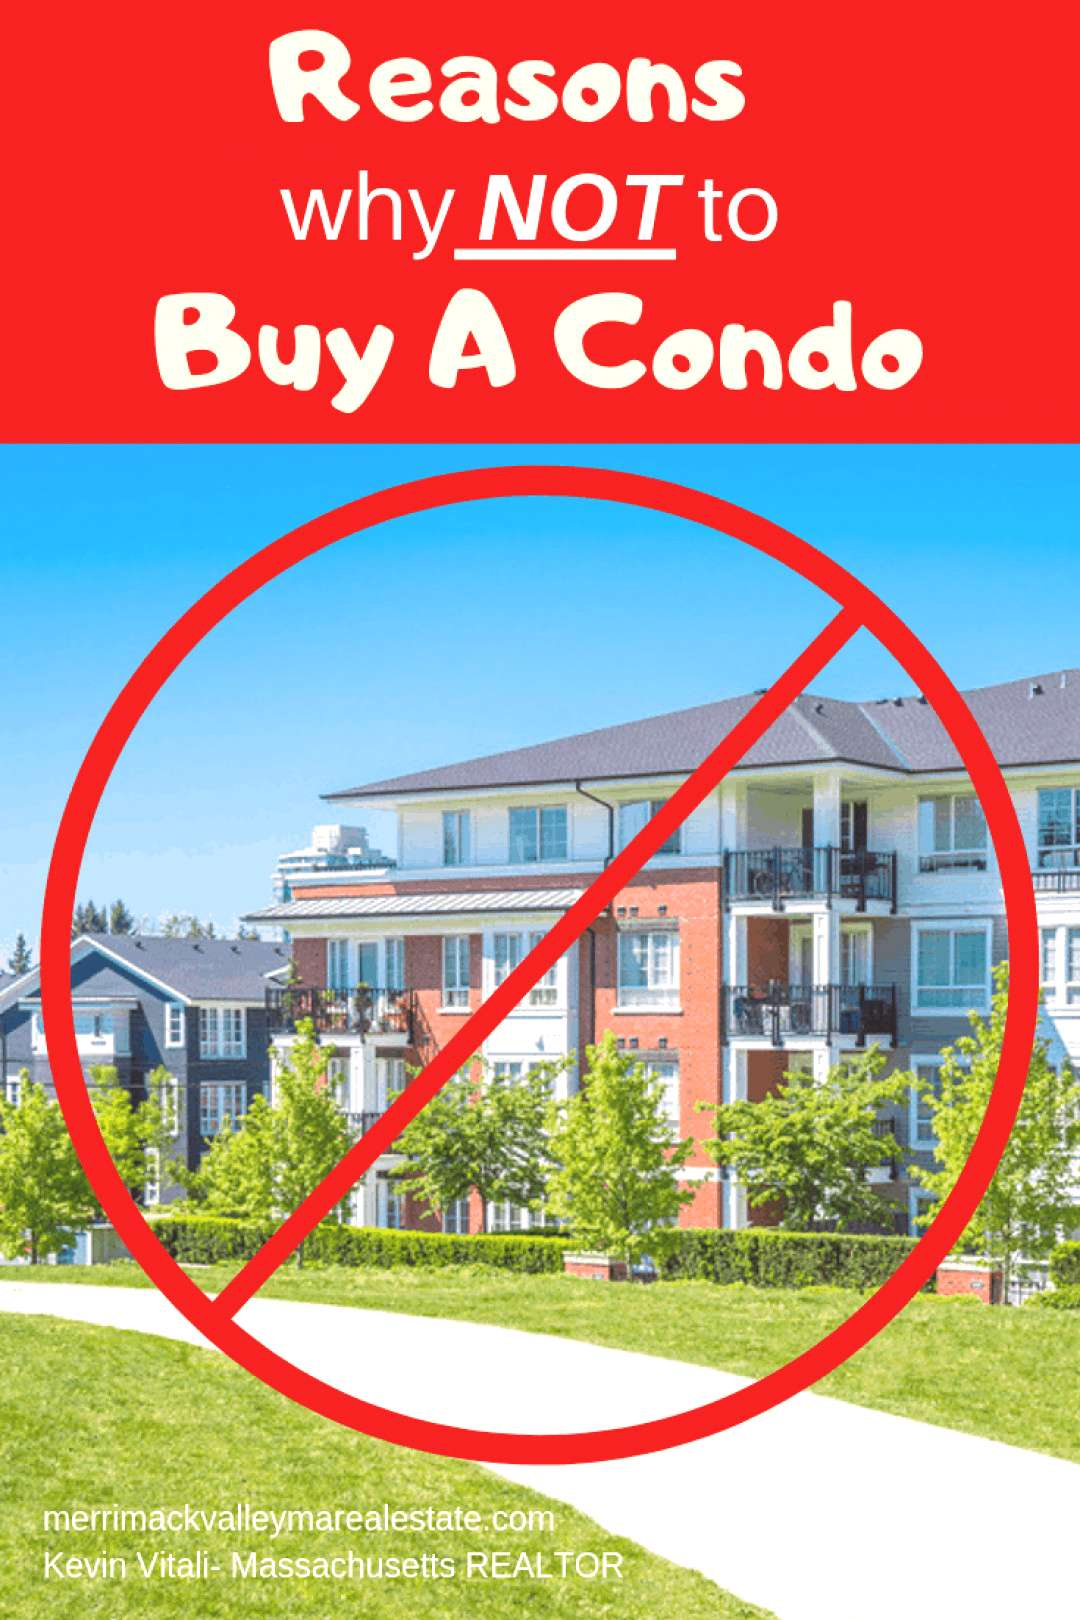 Reasons why not to buy a condominium. While buying a condo for some is a good opprortunity, buying